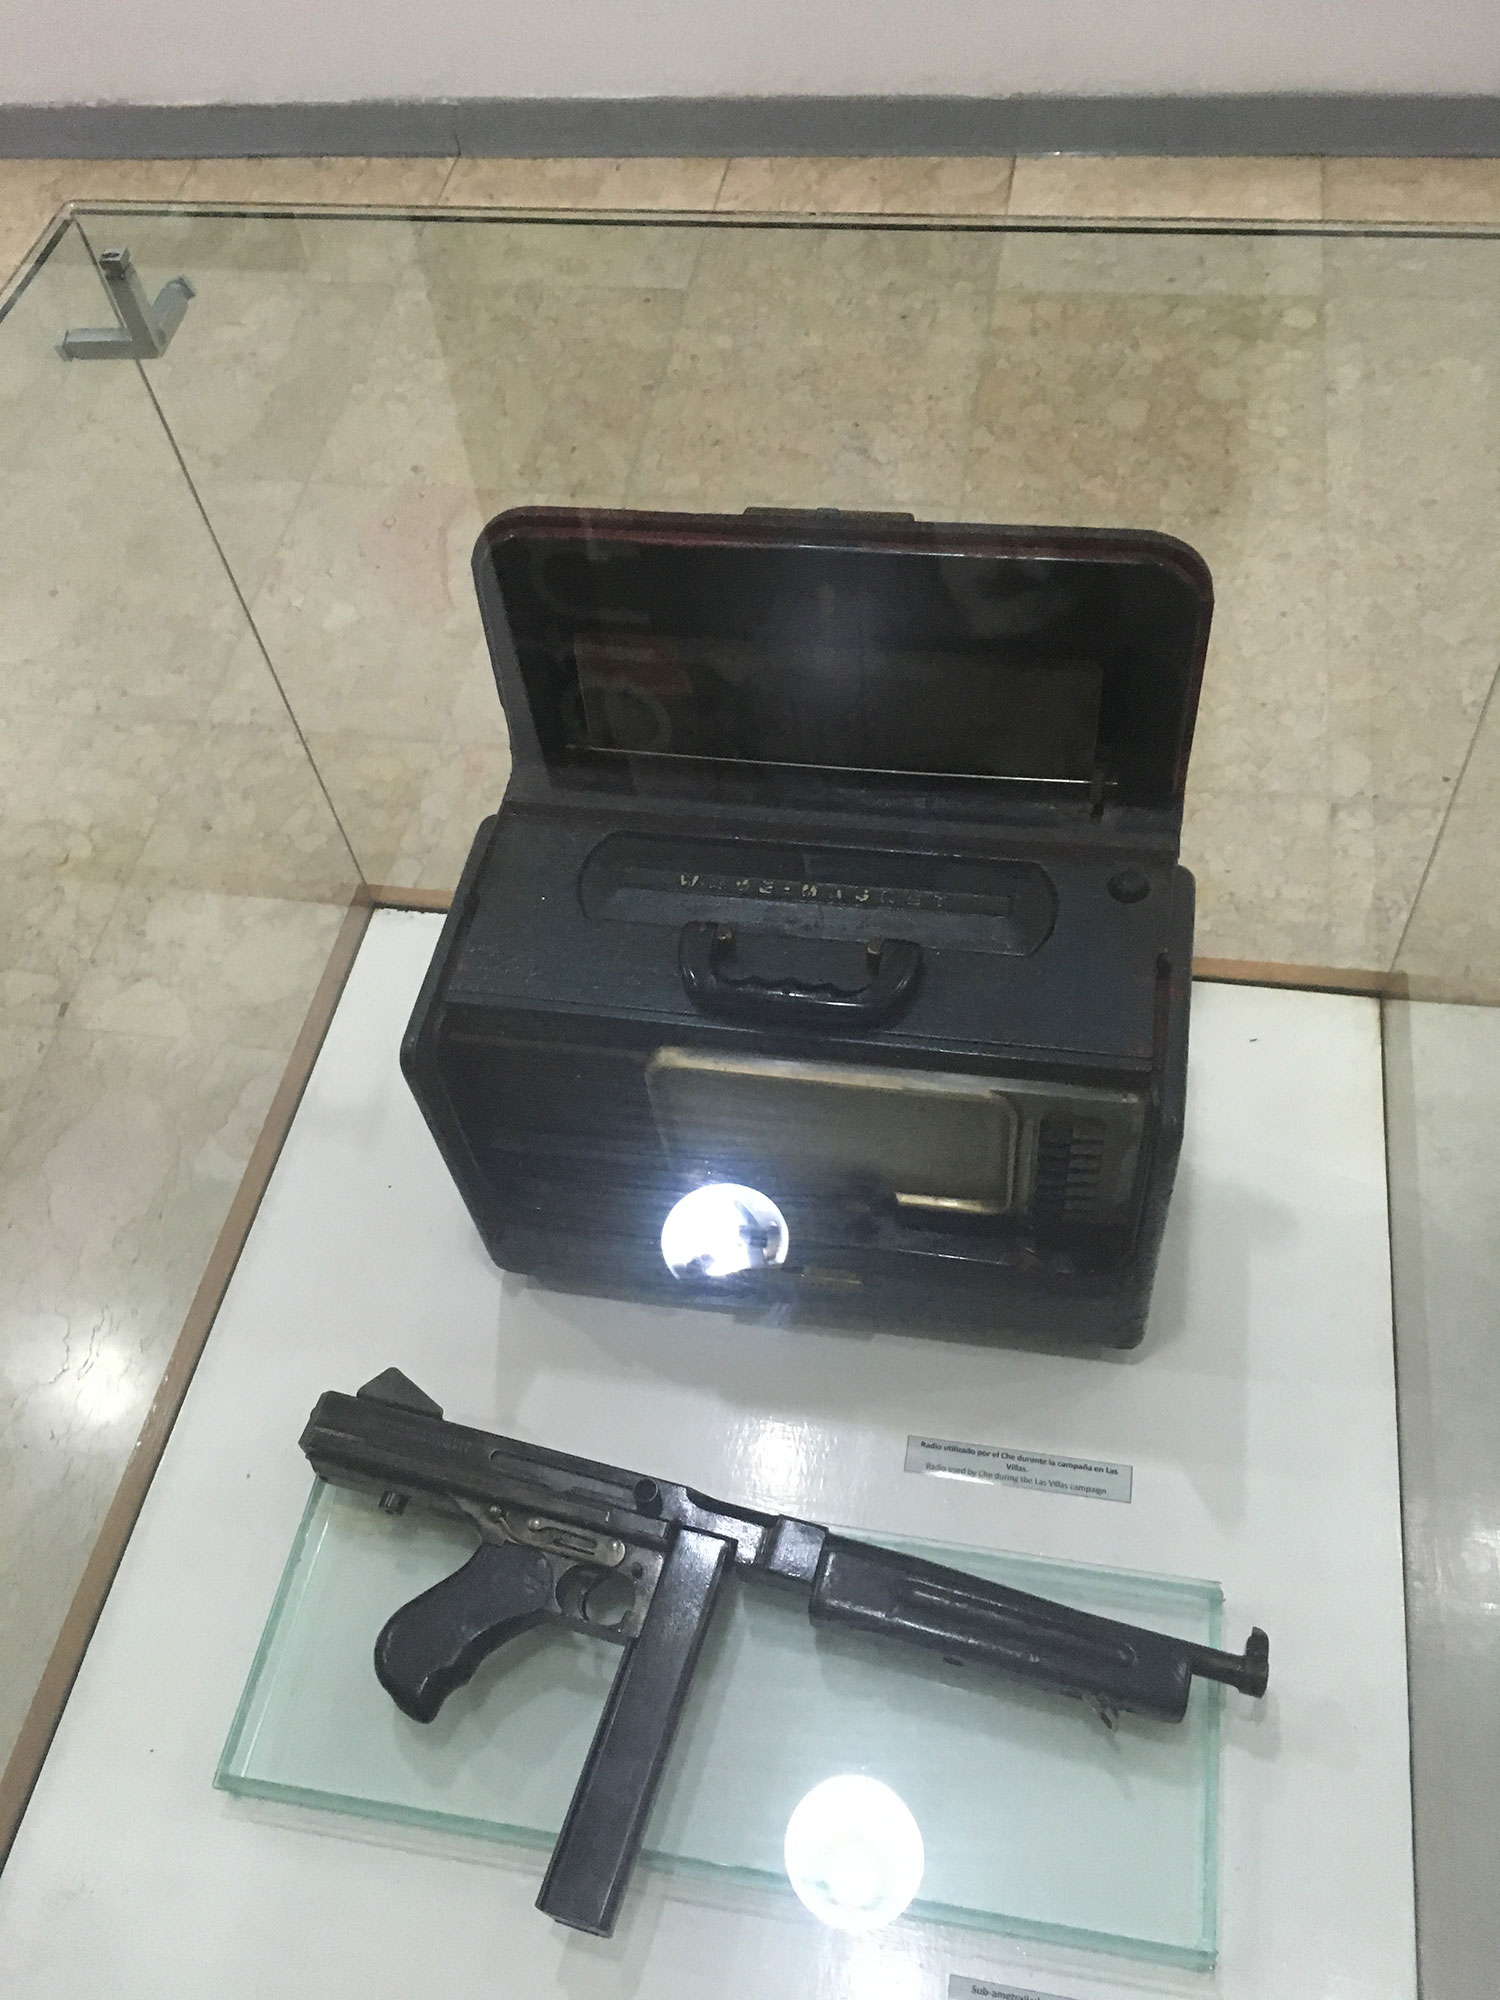 Personal items at the museum.